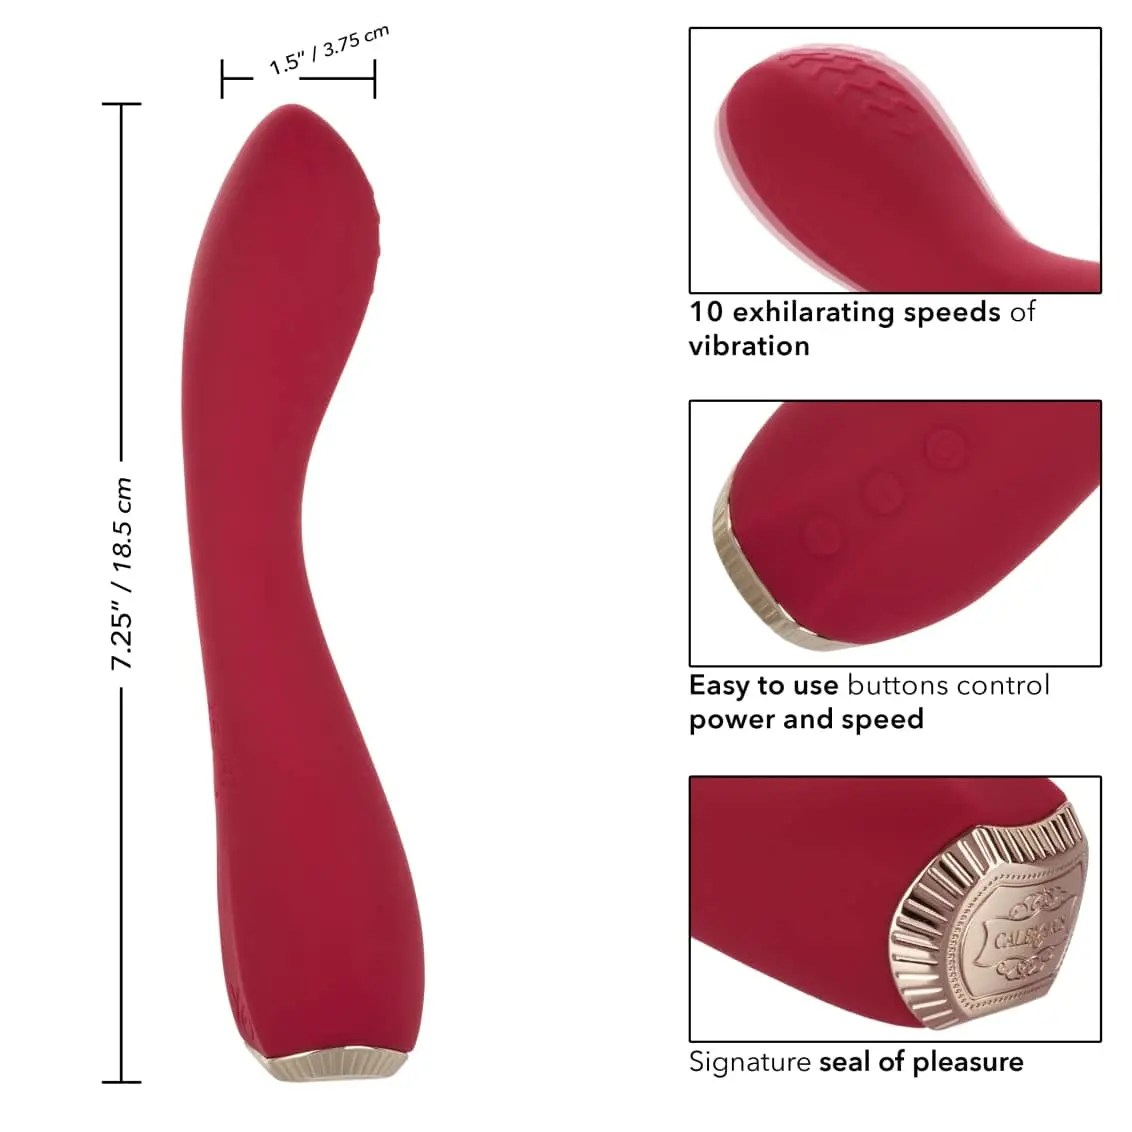 Uncorked Red Malbec - Silicone Rechargeable Vibrator - by Calexotics